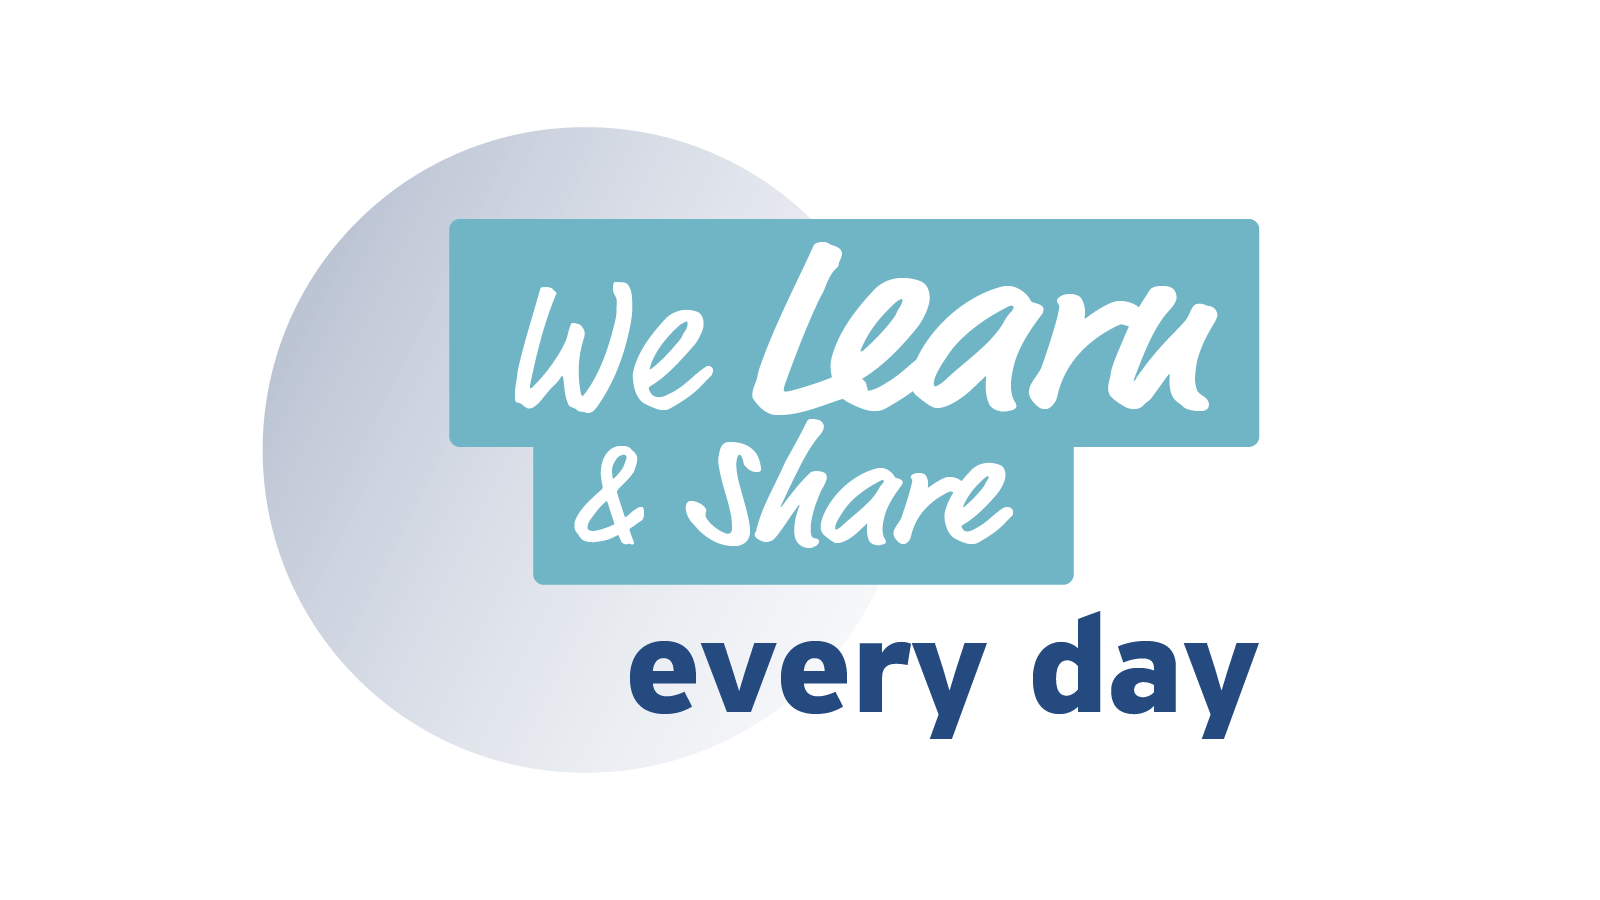 We Learn & Share Every Day